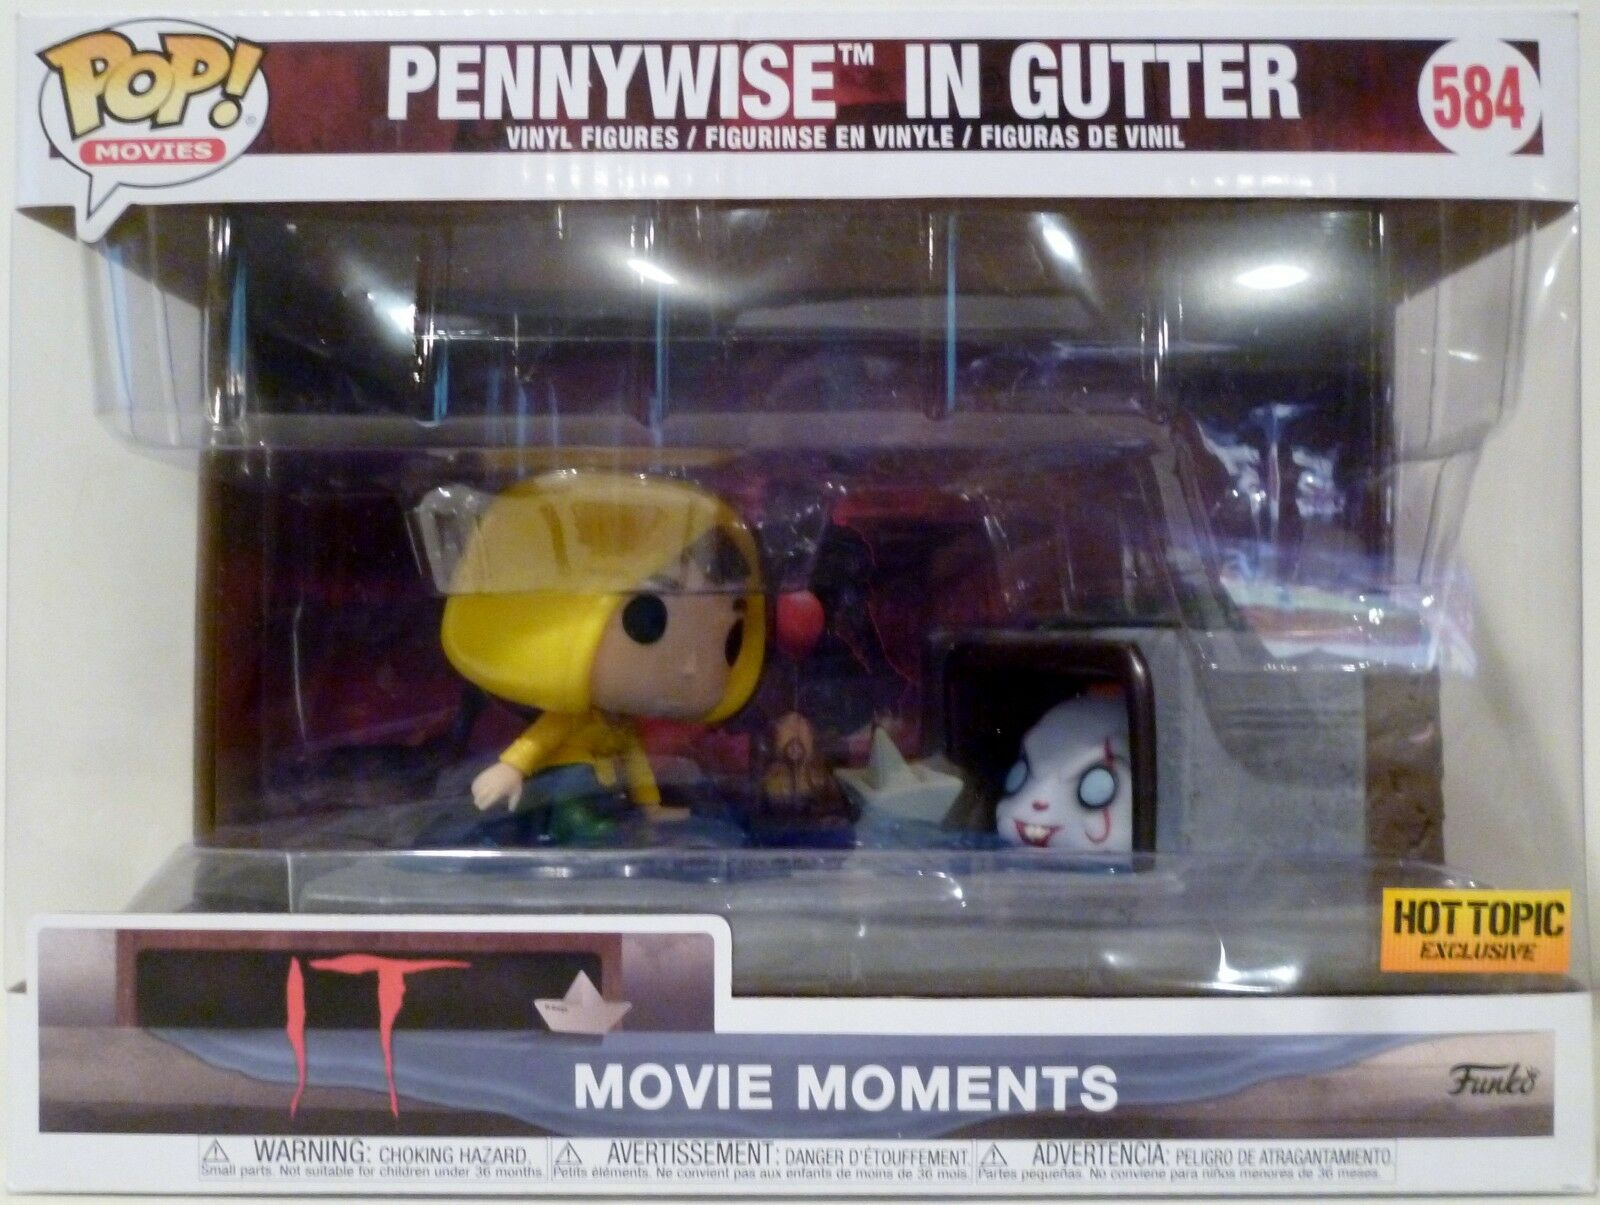 PENNYWISE IN  GUTTER IT Pop Movie MoHommests Vinyl Figure Box Set 584 Hot Topic 2018  marque célèbre